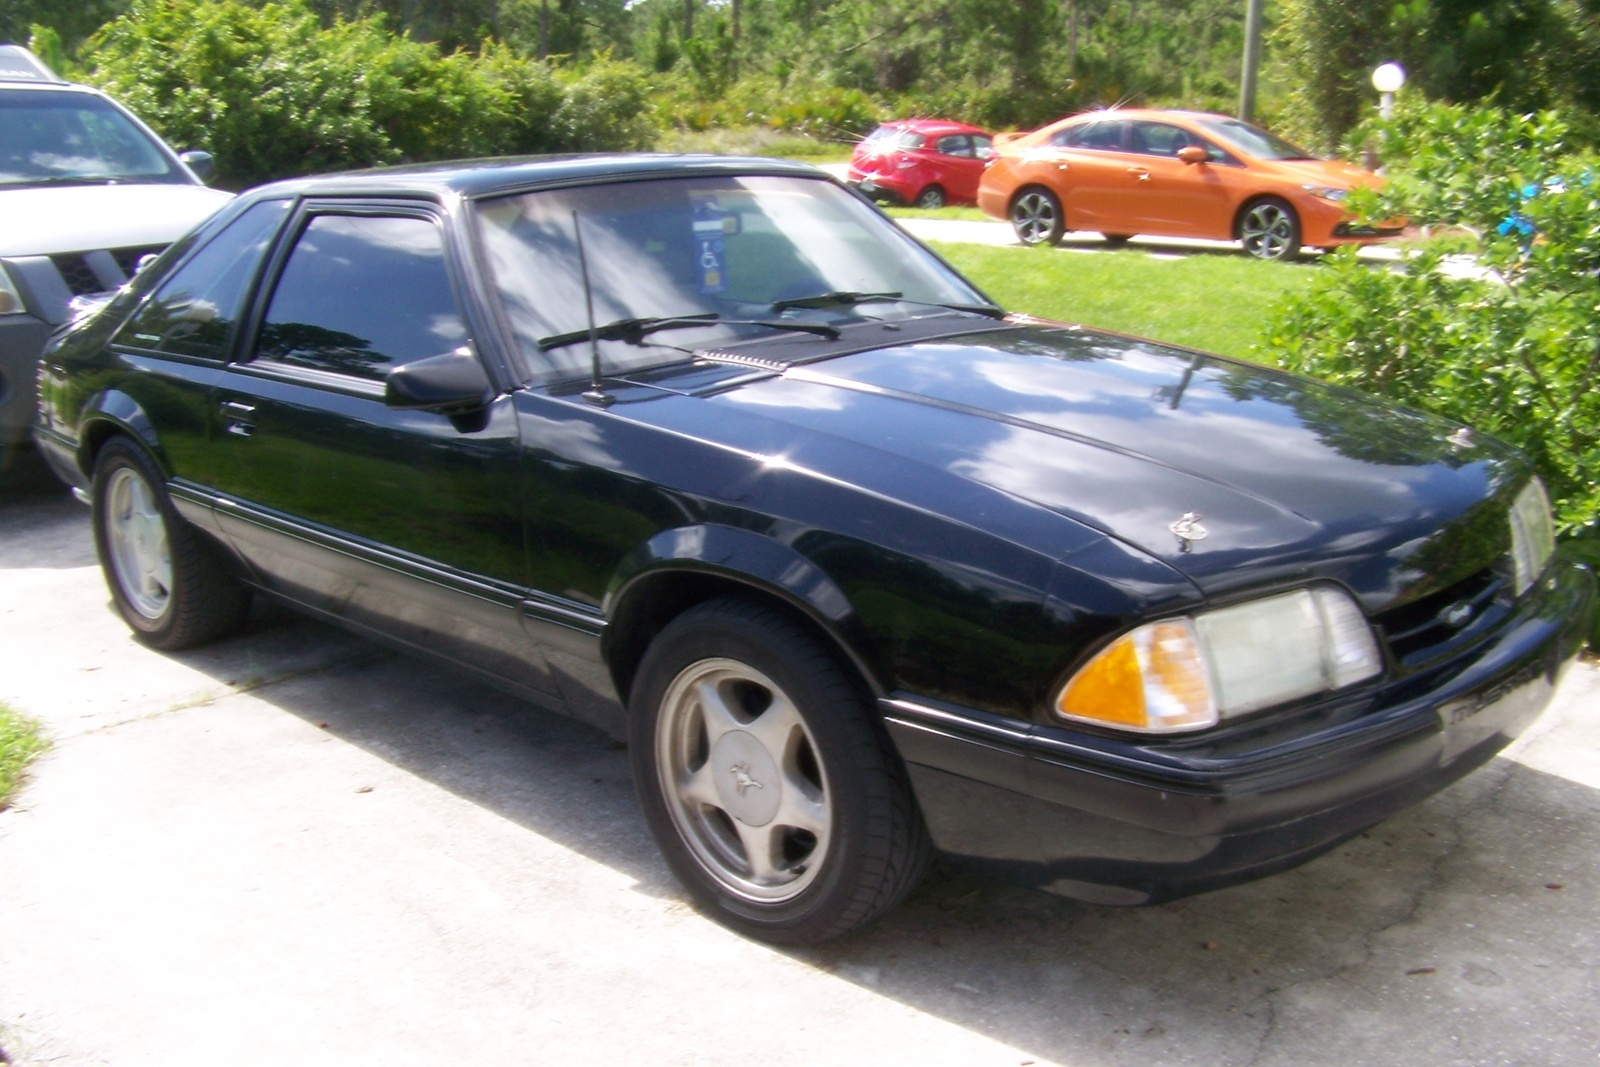 Ford mustang questions i have a 1990 mustang 5 0 lx 5 sp with